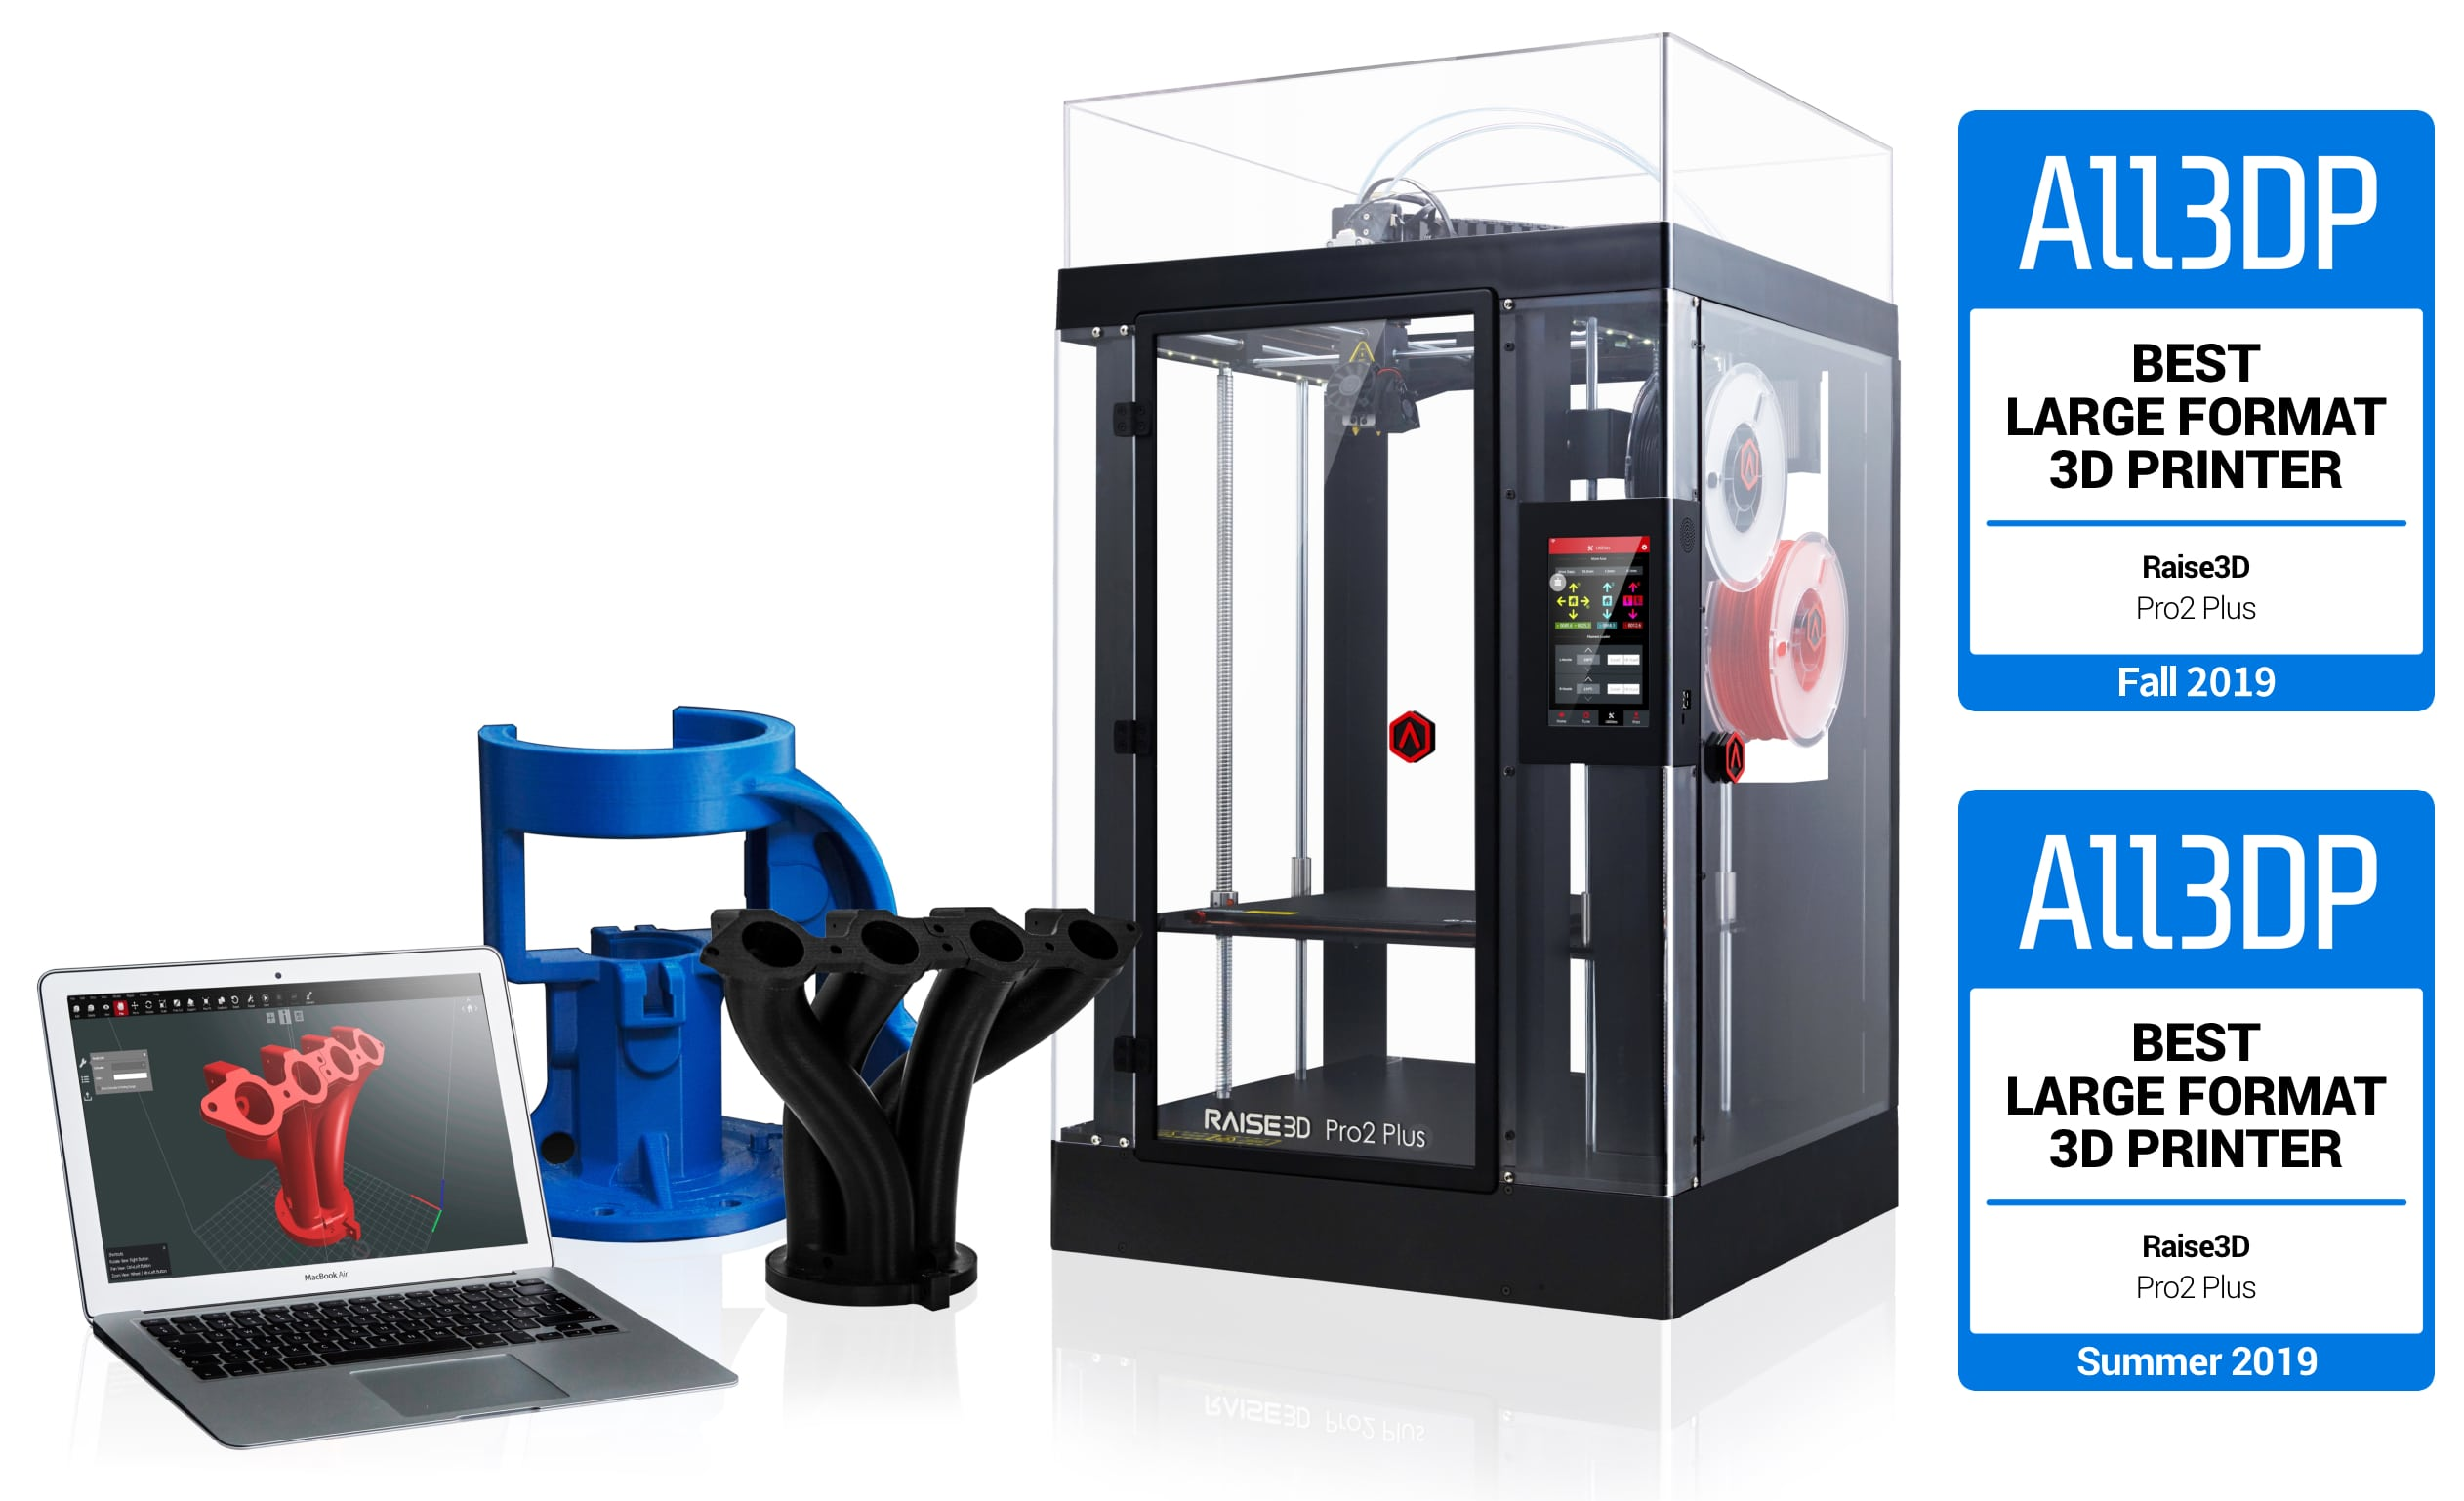 Raise3D Pro2 Plus 3D Printer Awards Winning Banner